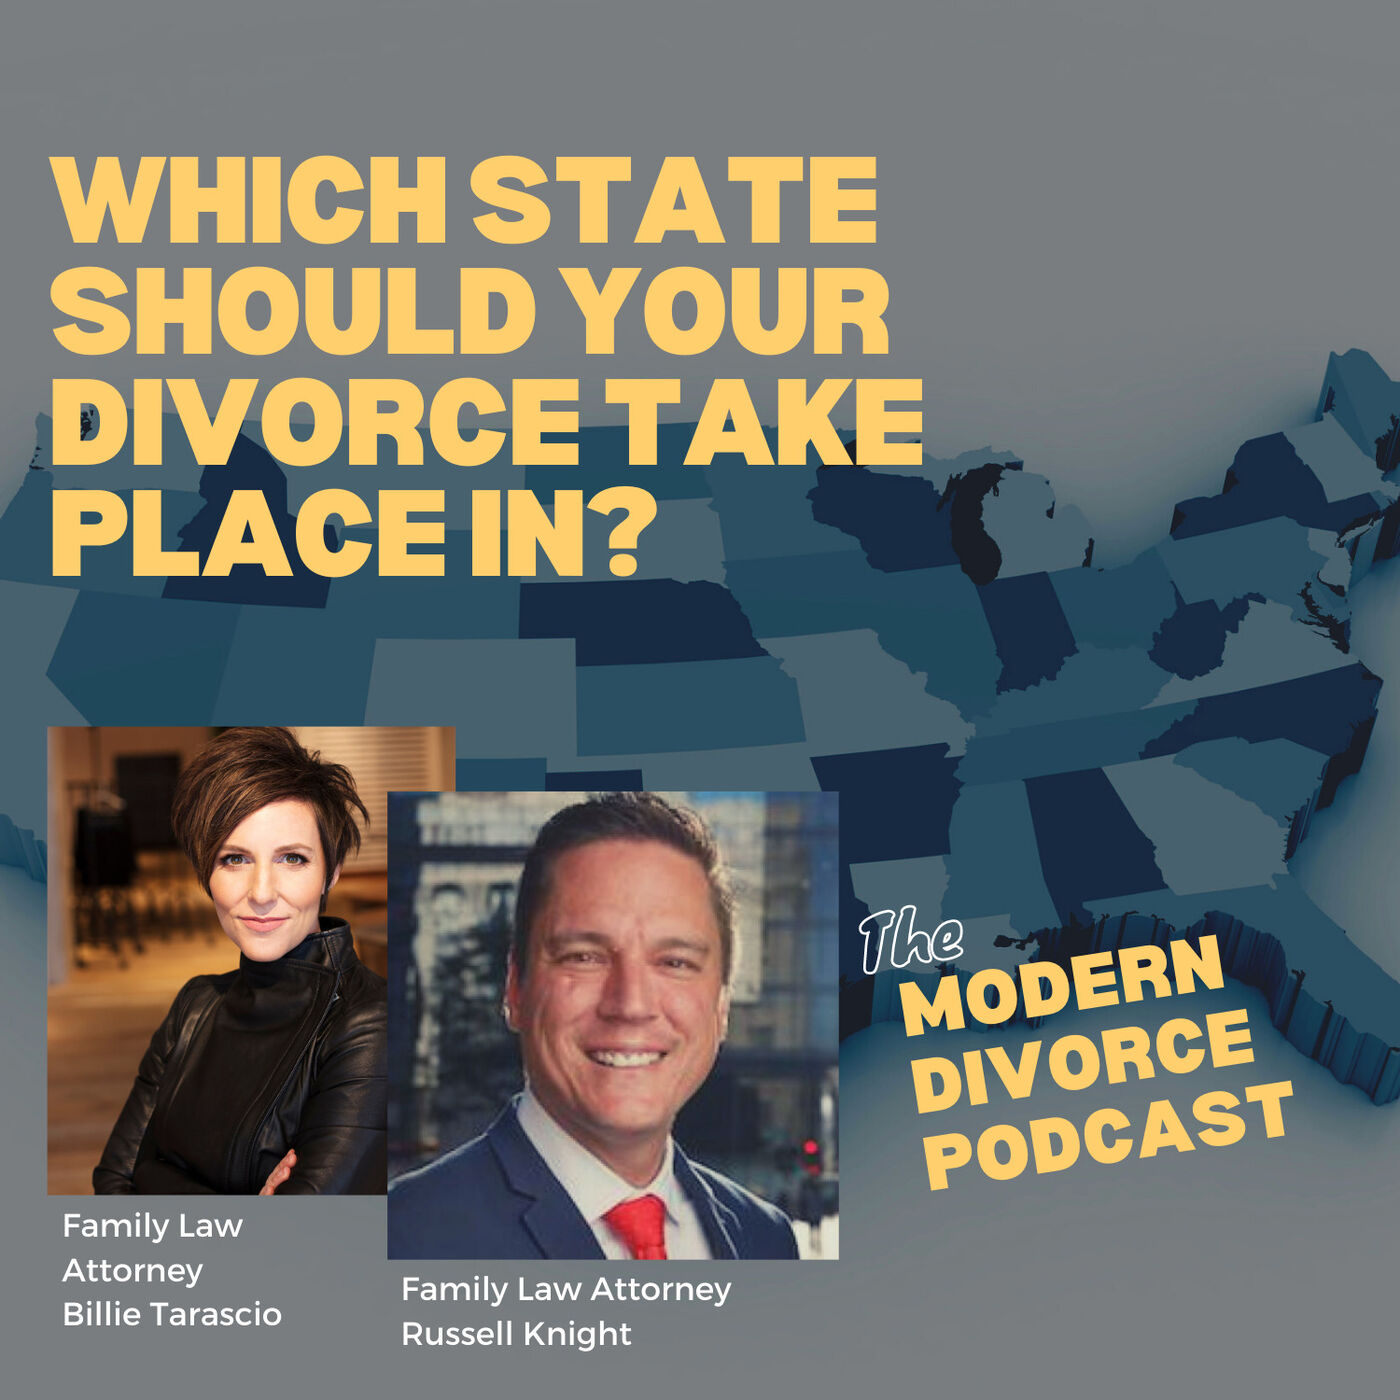 Which state or jurisdiction should you divorce in?